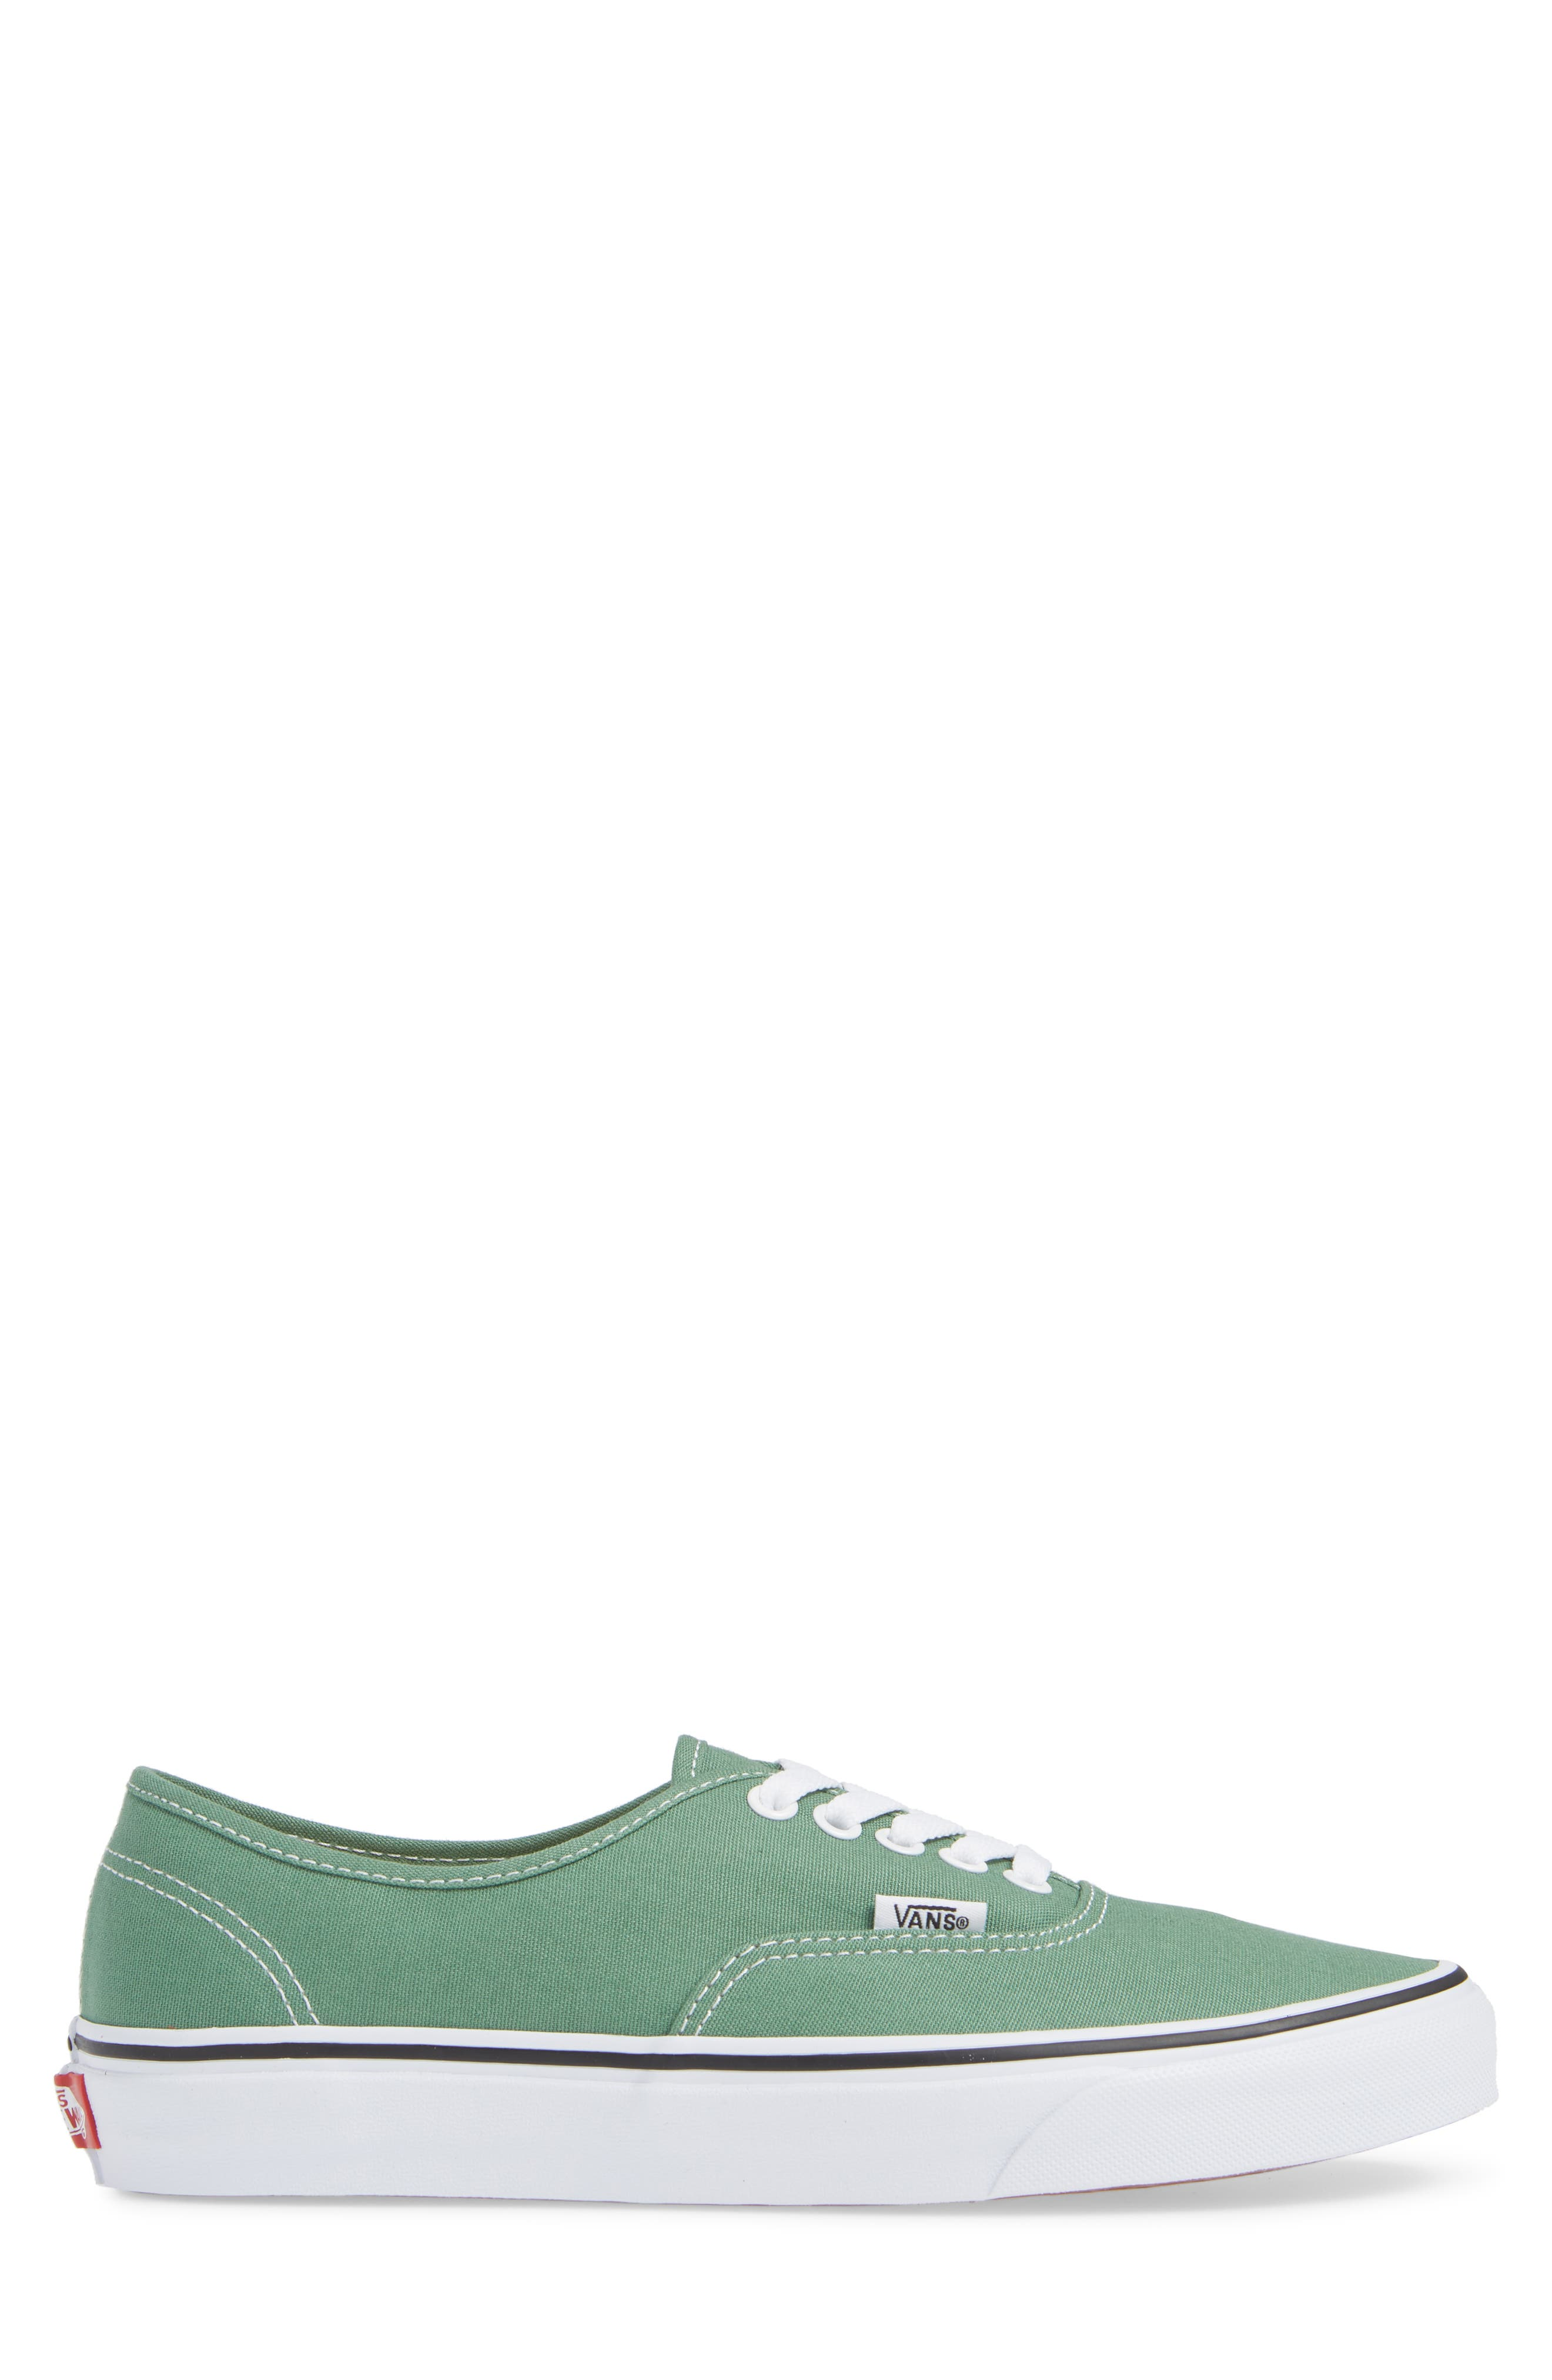 VANS,                             'Authentic' Sneaker,                             Alternate thumbnail 3, color,                             DEEP GRASS GREEN/ TRUE WHITE